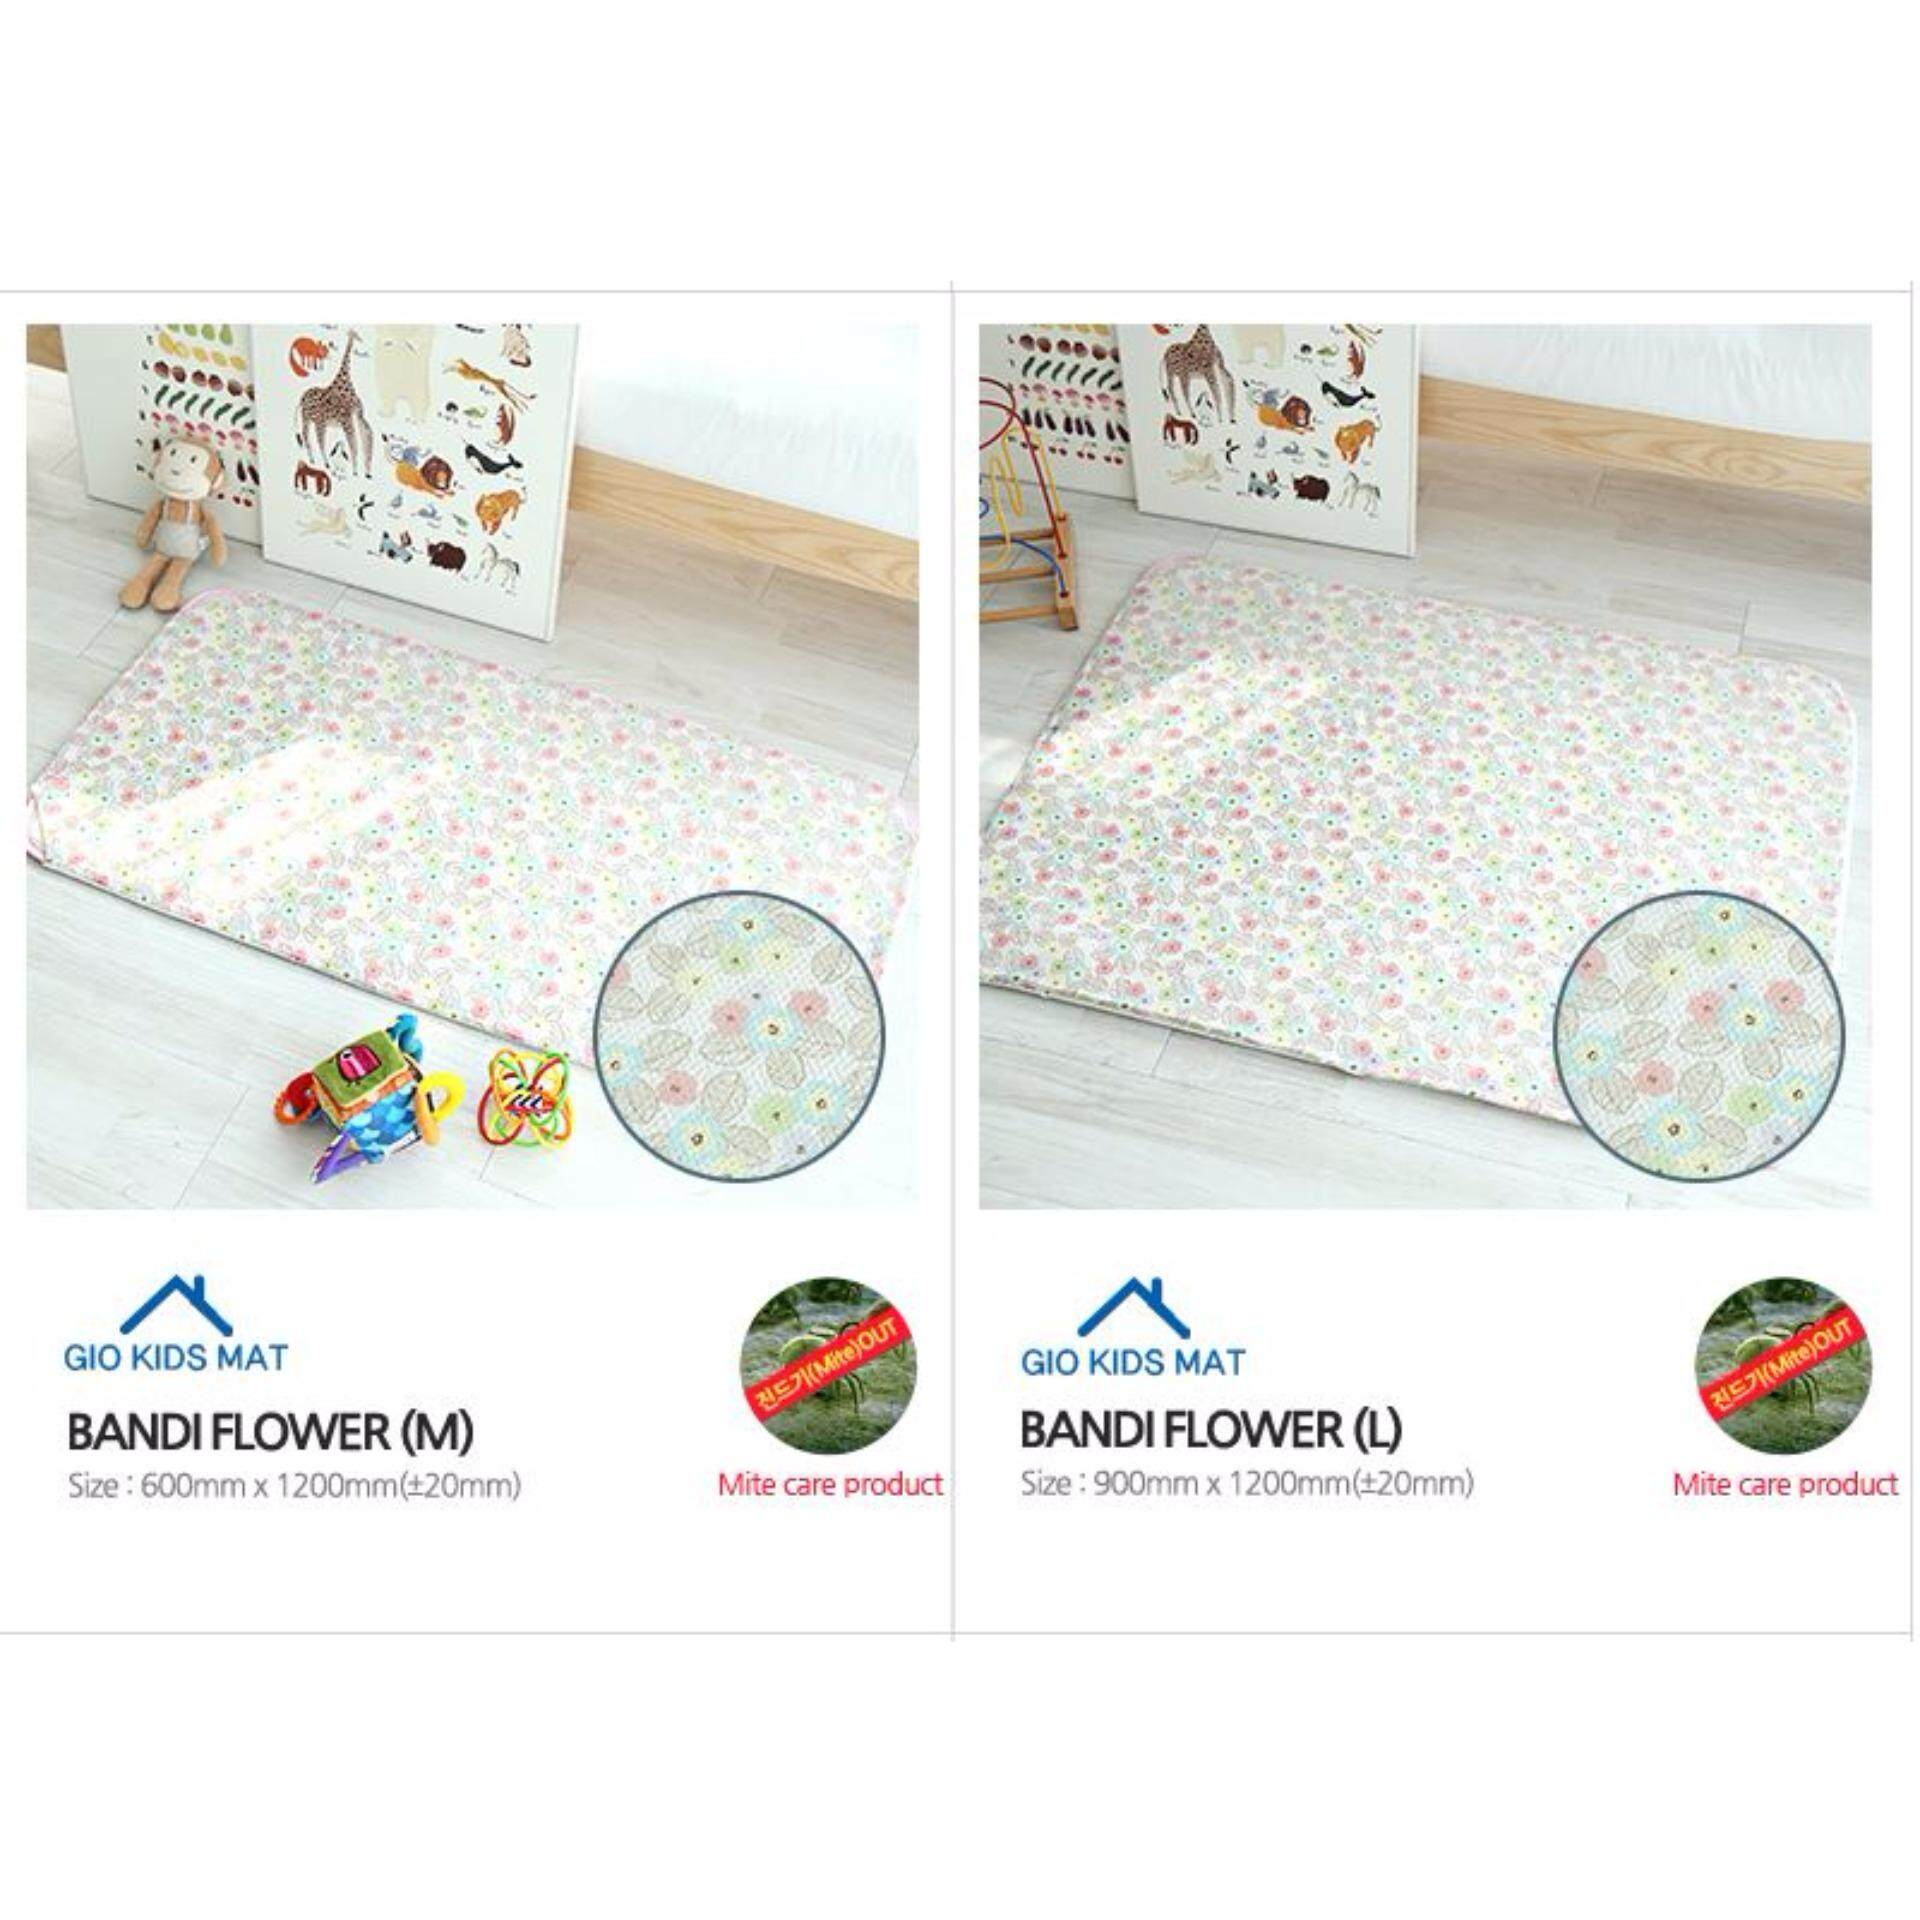 GIO KIDS MAT 2 in 1 Bandi Flower- L Size with Carrier Bag